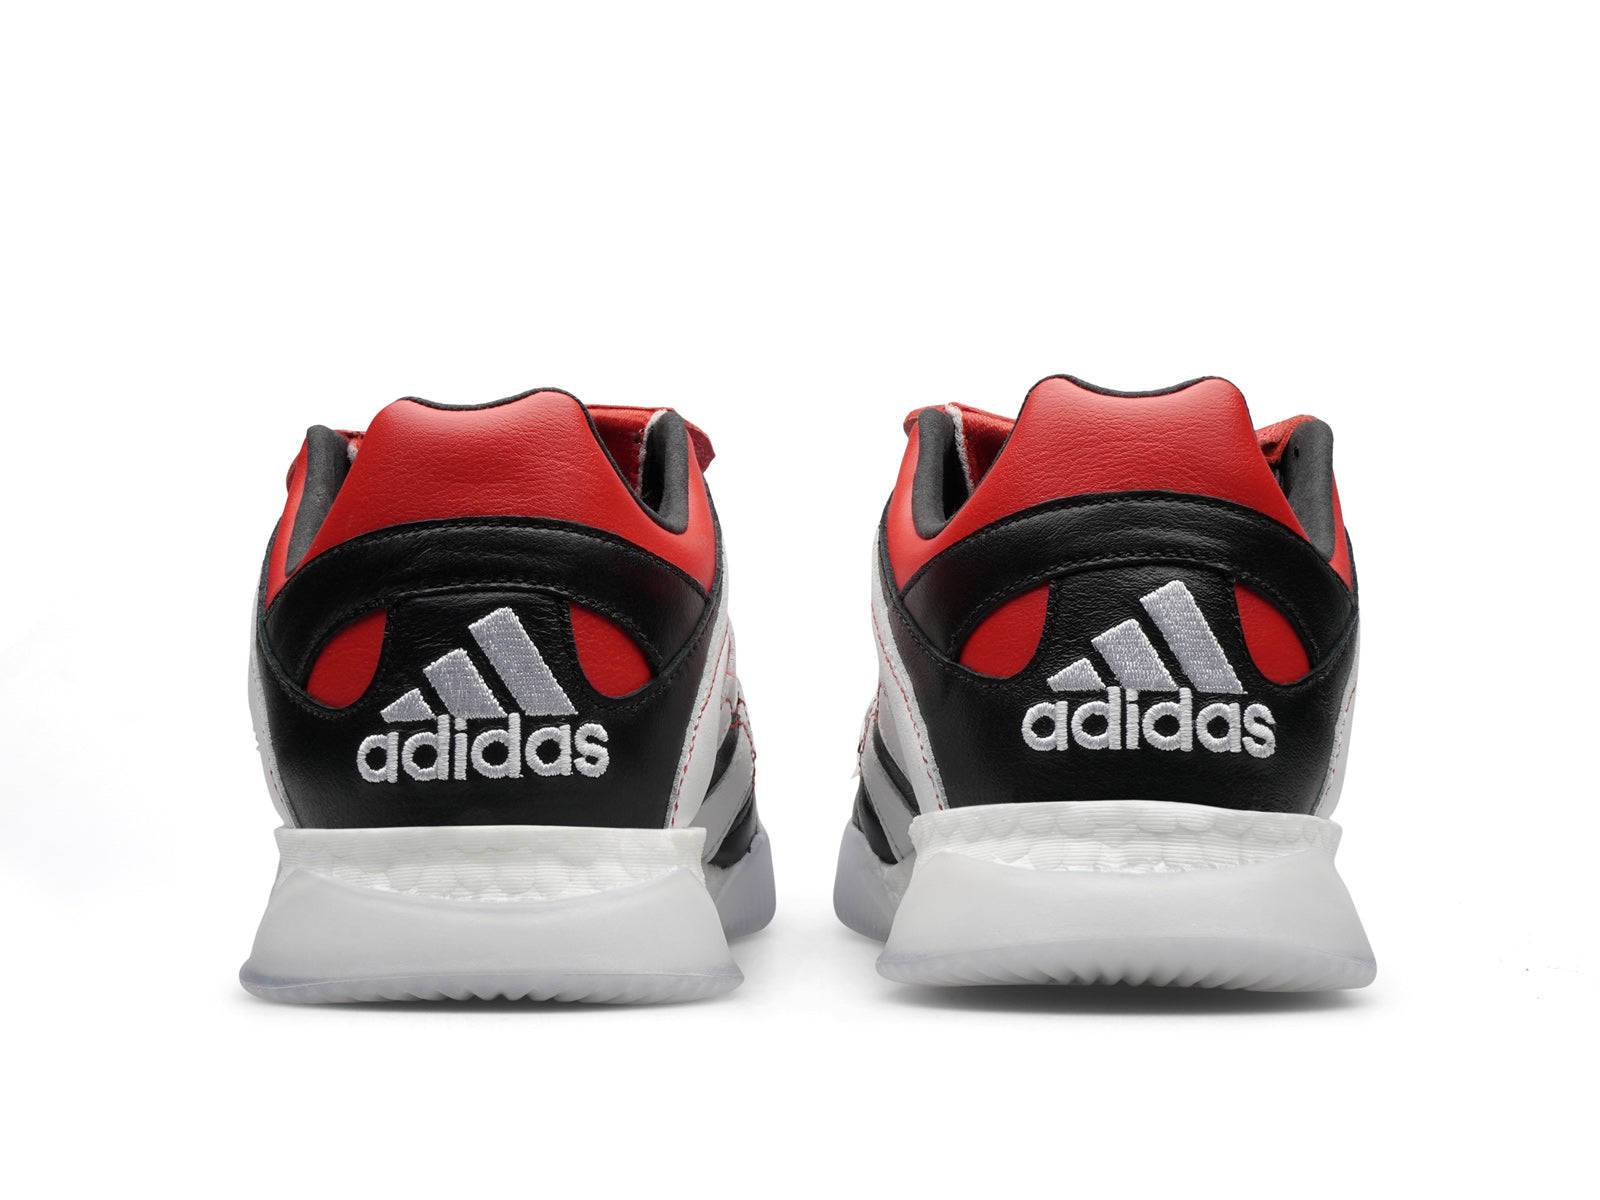 b6cd1acd4f12 The construction of the Adidas Predator Accelerator Trainer is then  finished with a BOOST inspired sole.